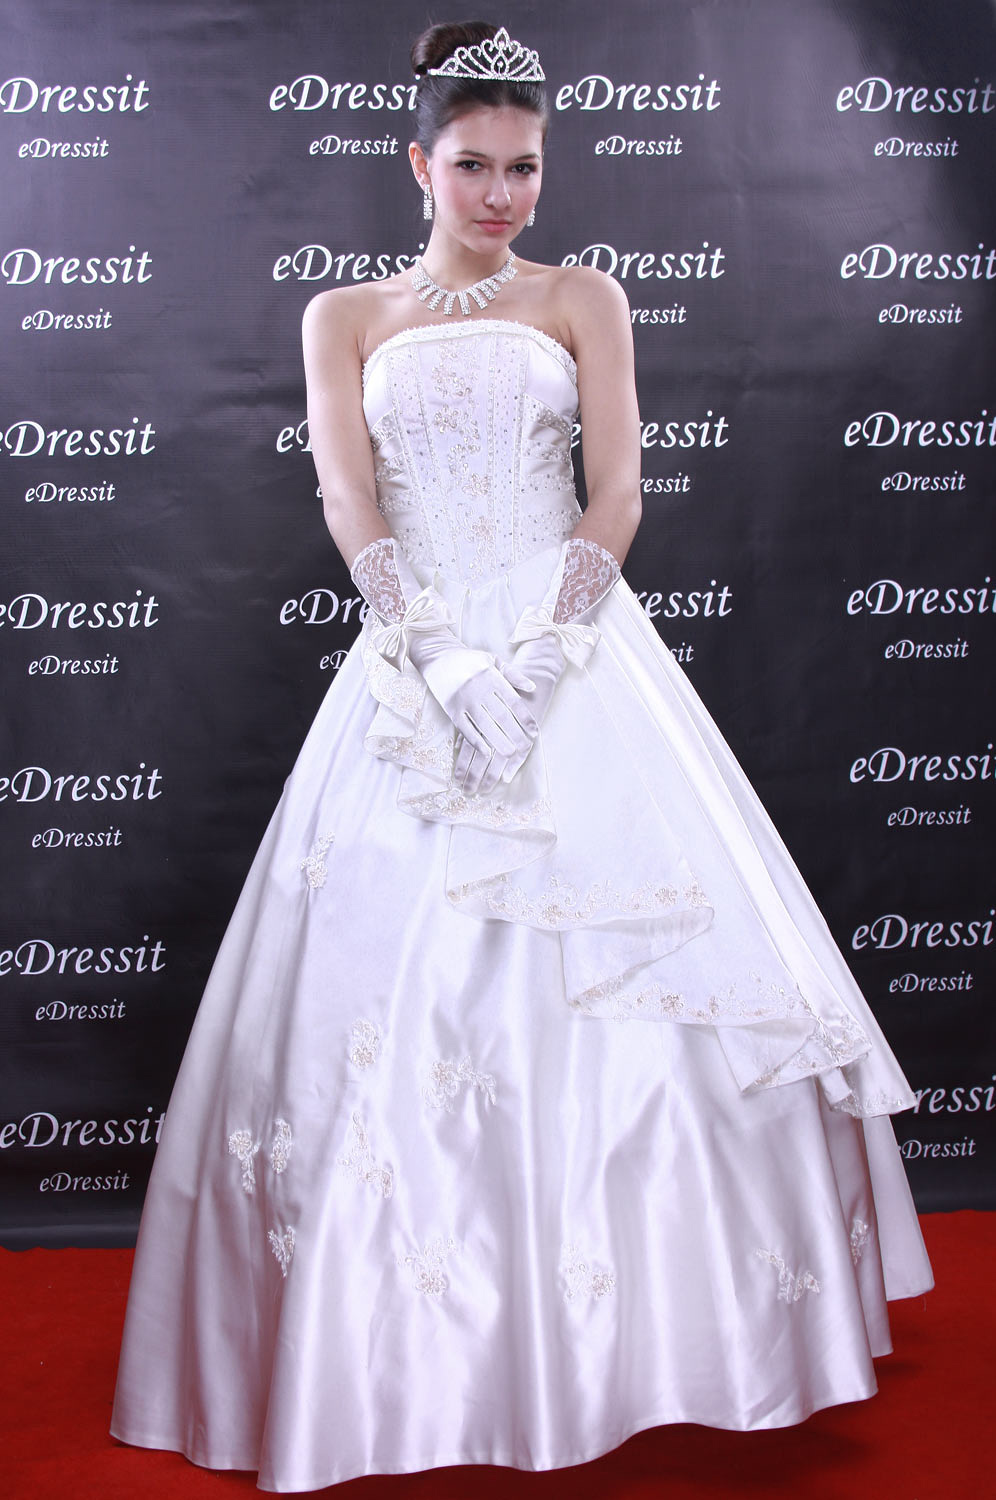 Christmas Discount 50% Off eDressit White Prom Gown Evening Wedding Dress (01091107)